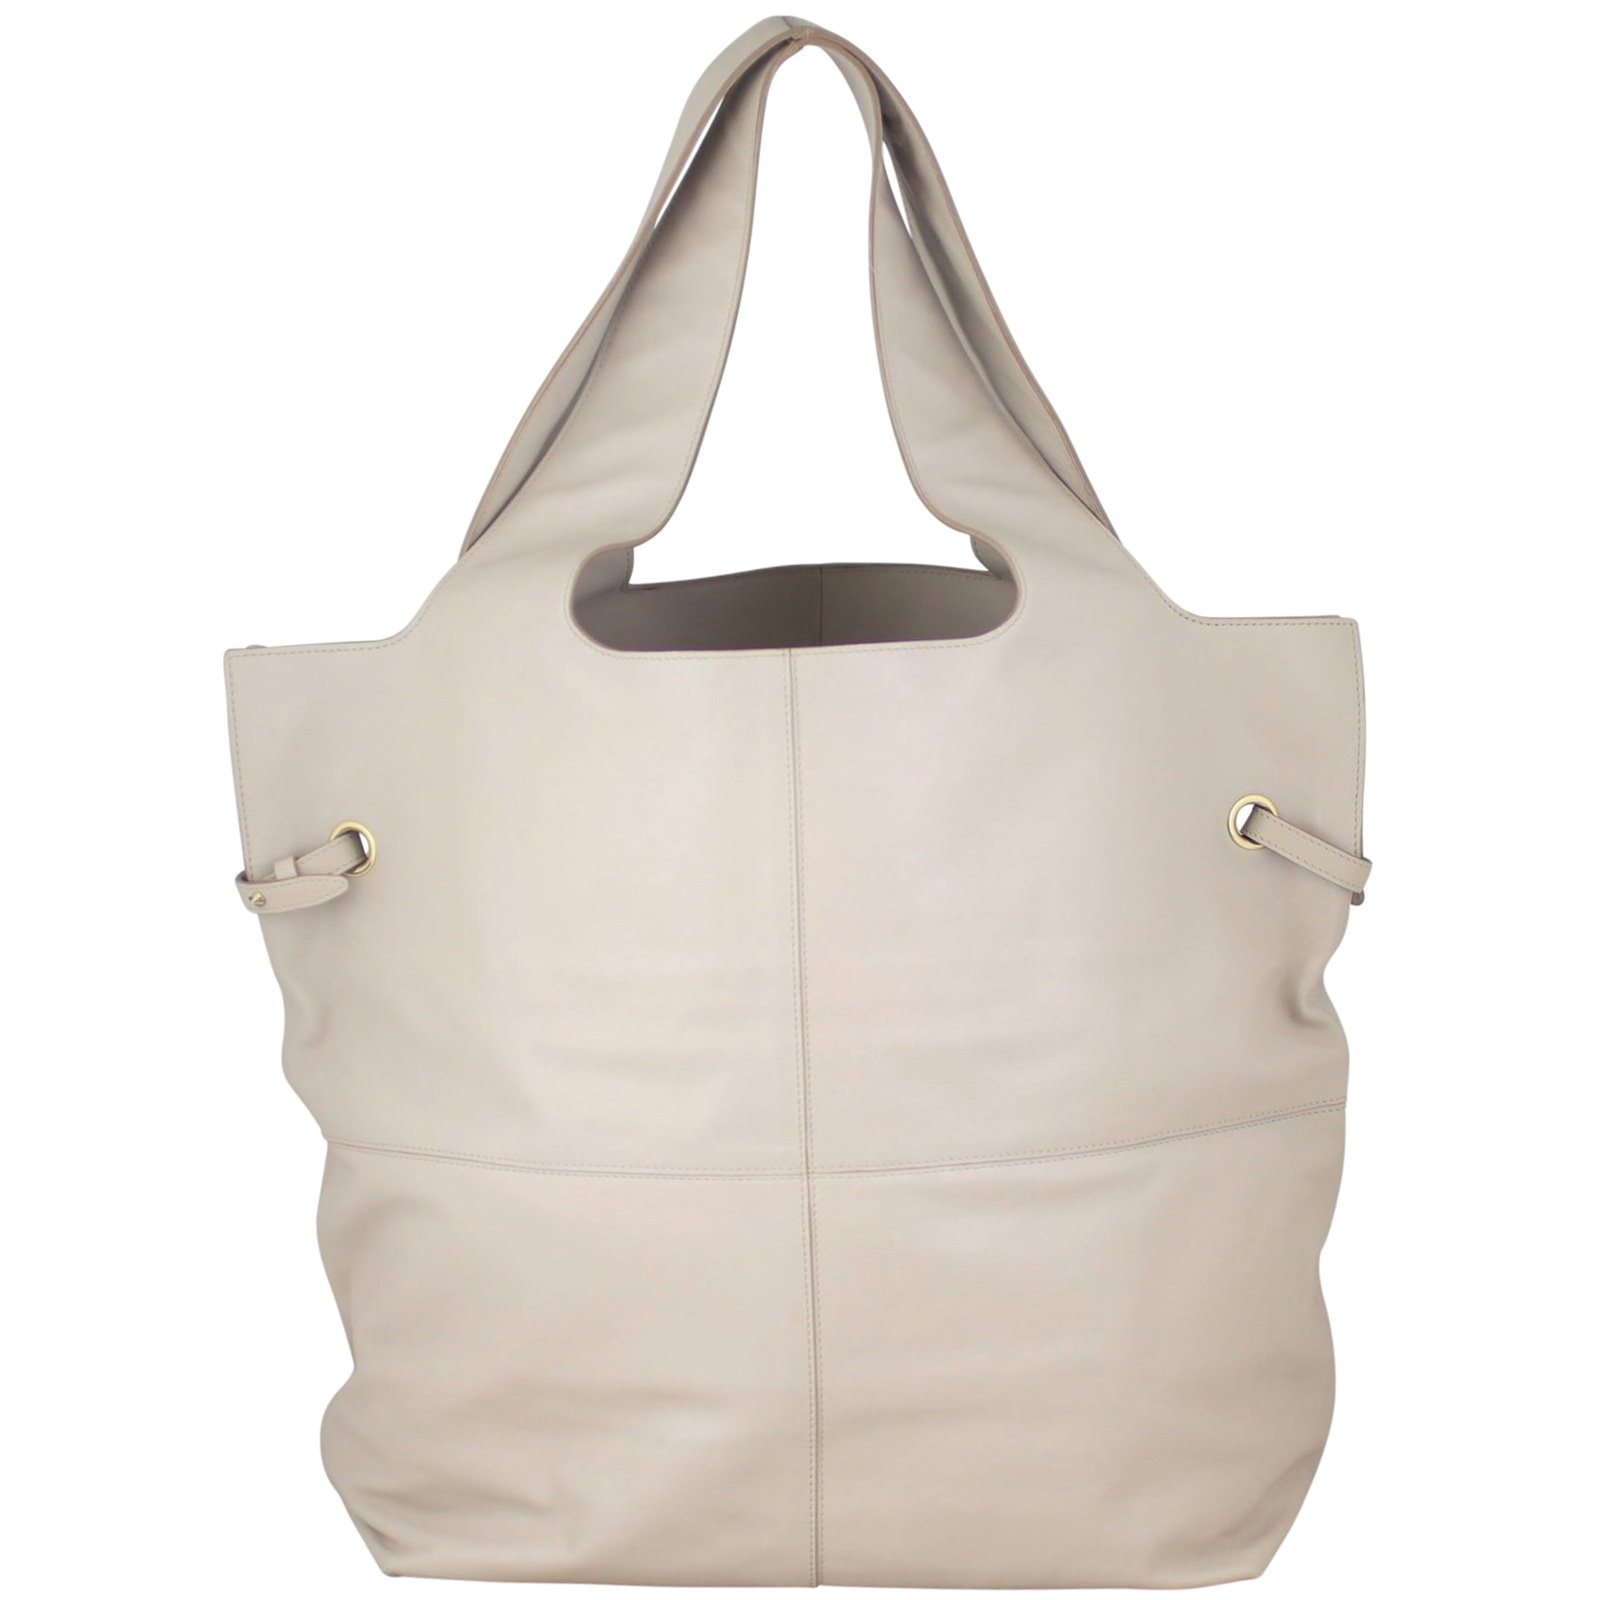 Authentic Givenchy George V Tote Bag   eBay